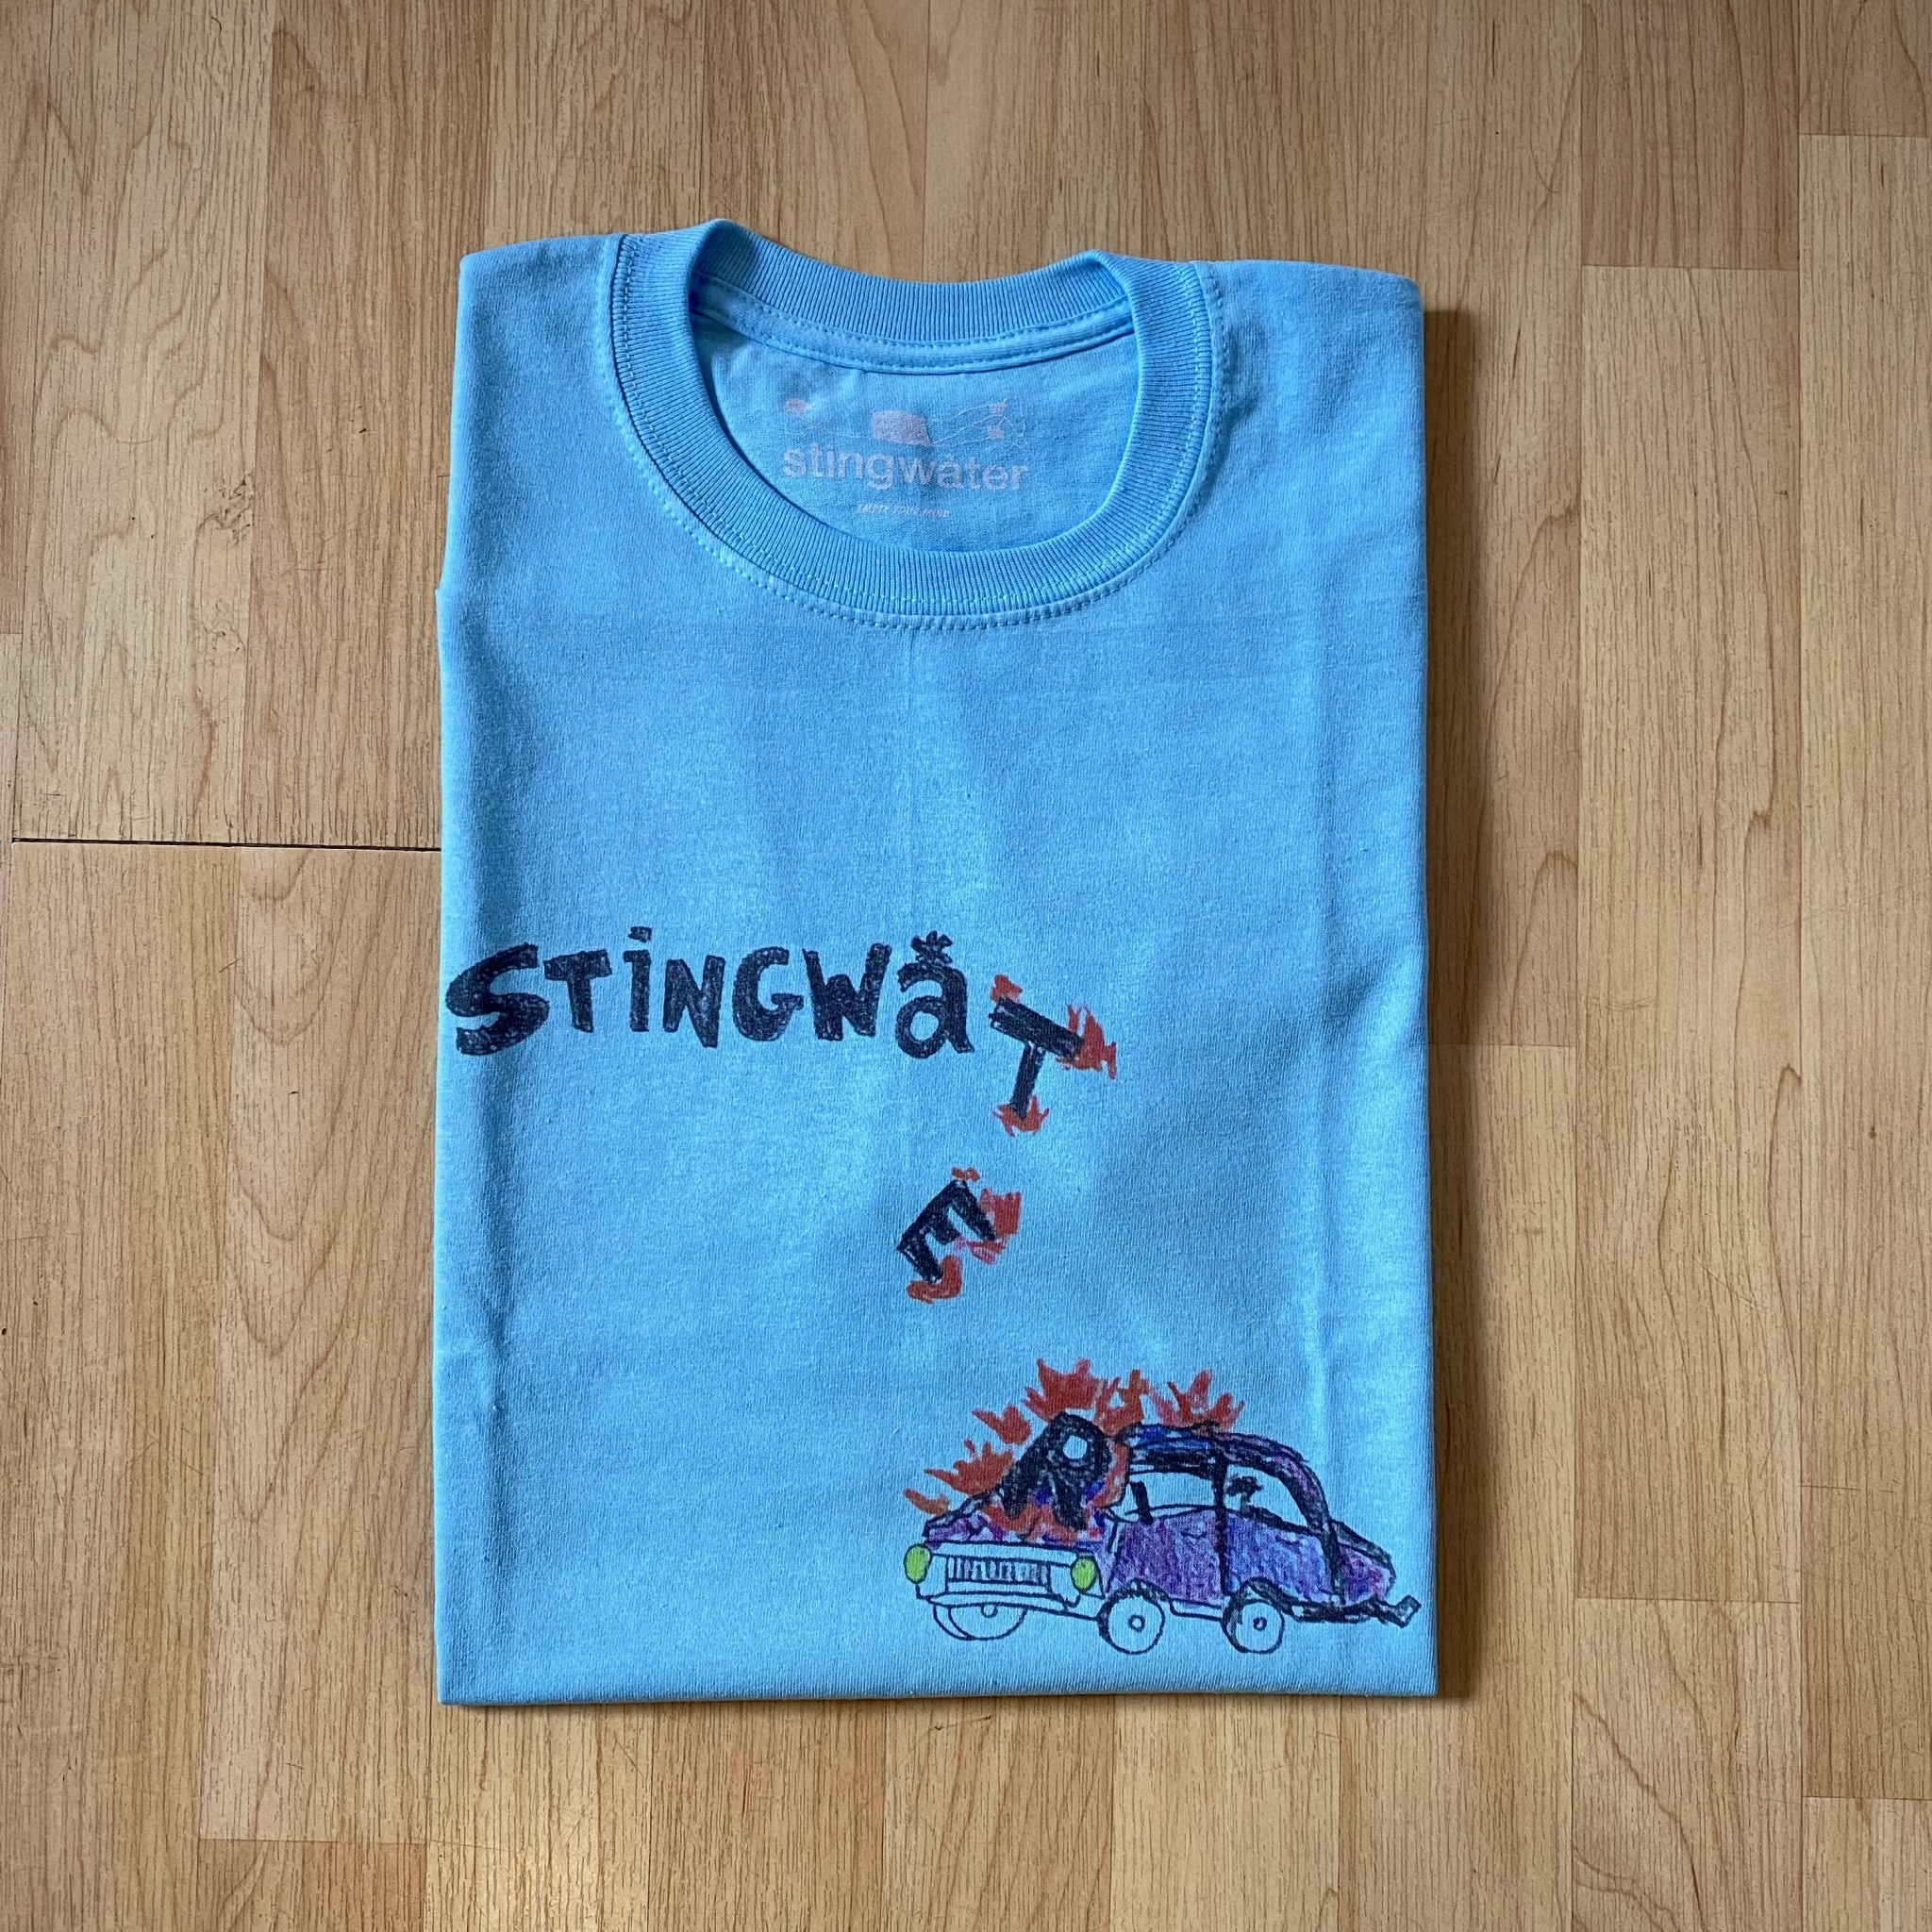 Stingwater Self-Driving Car Aqua Blue Tee